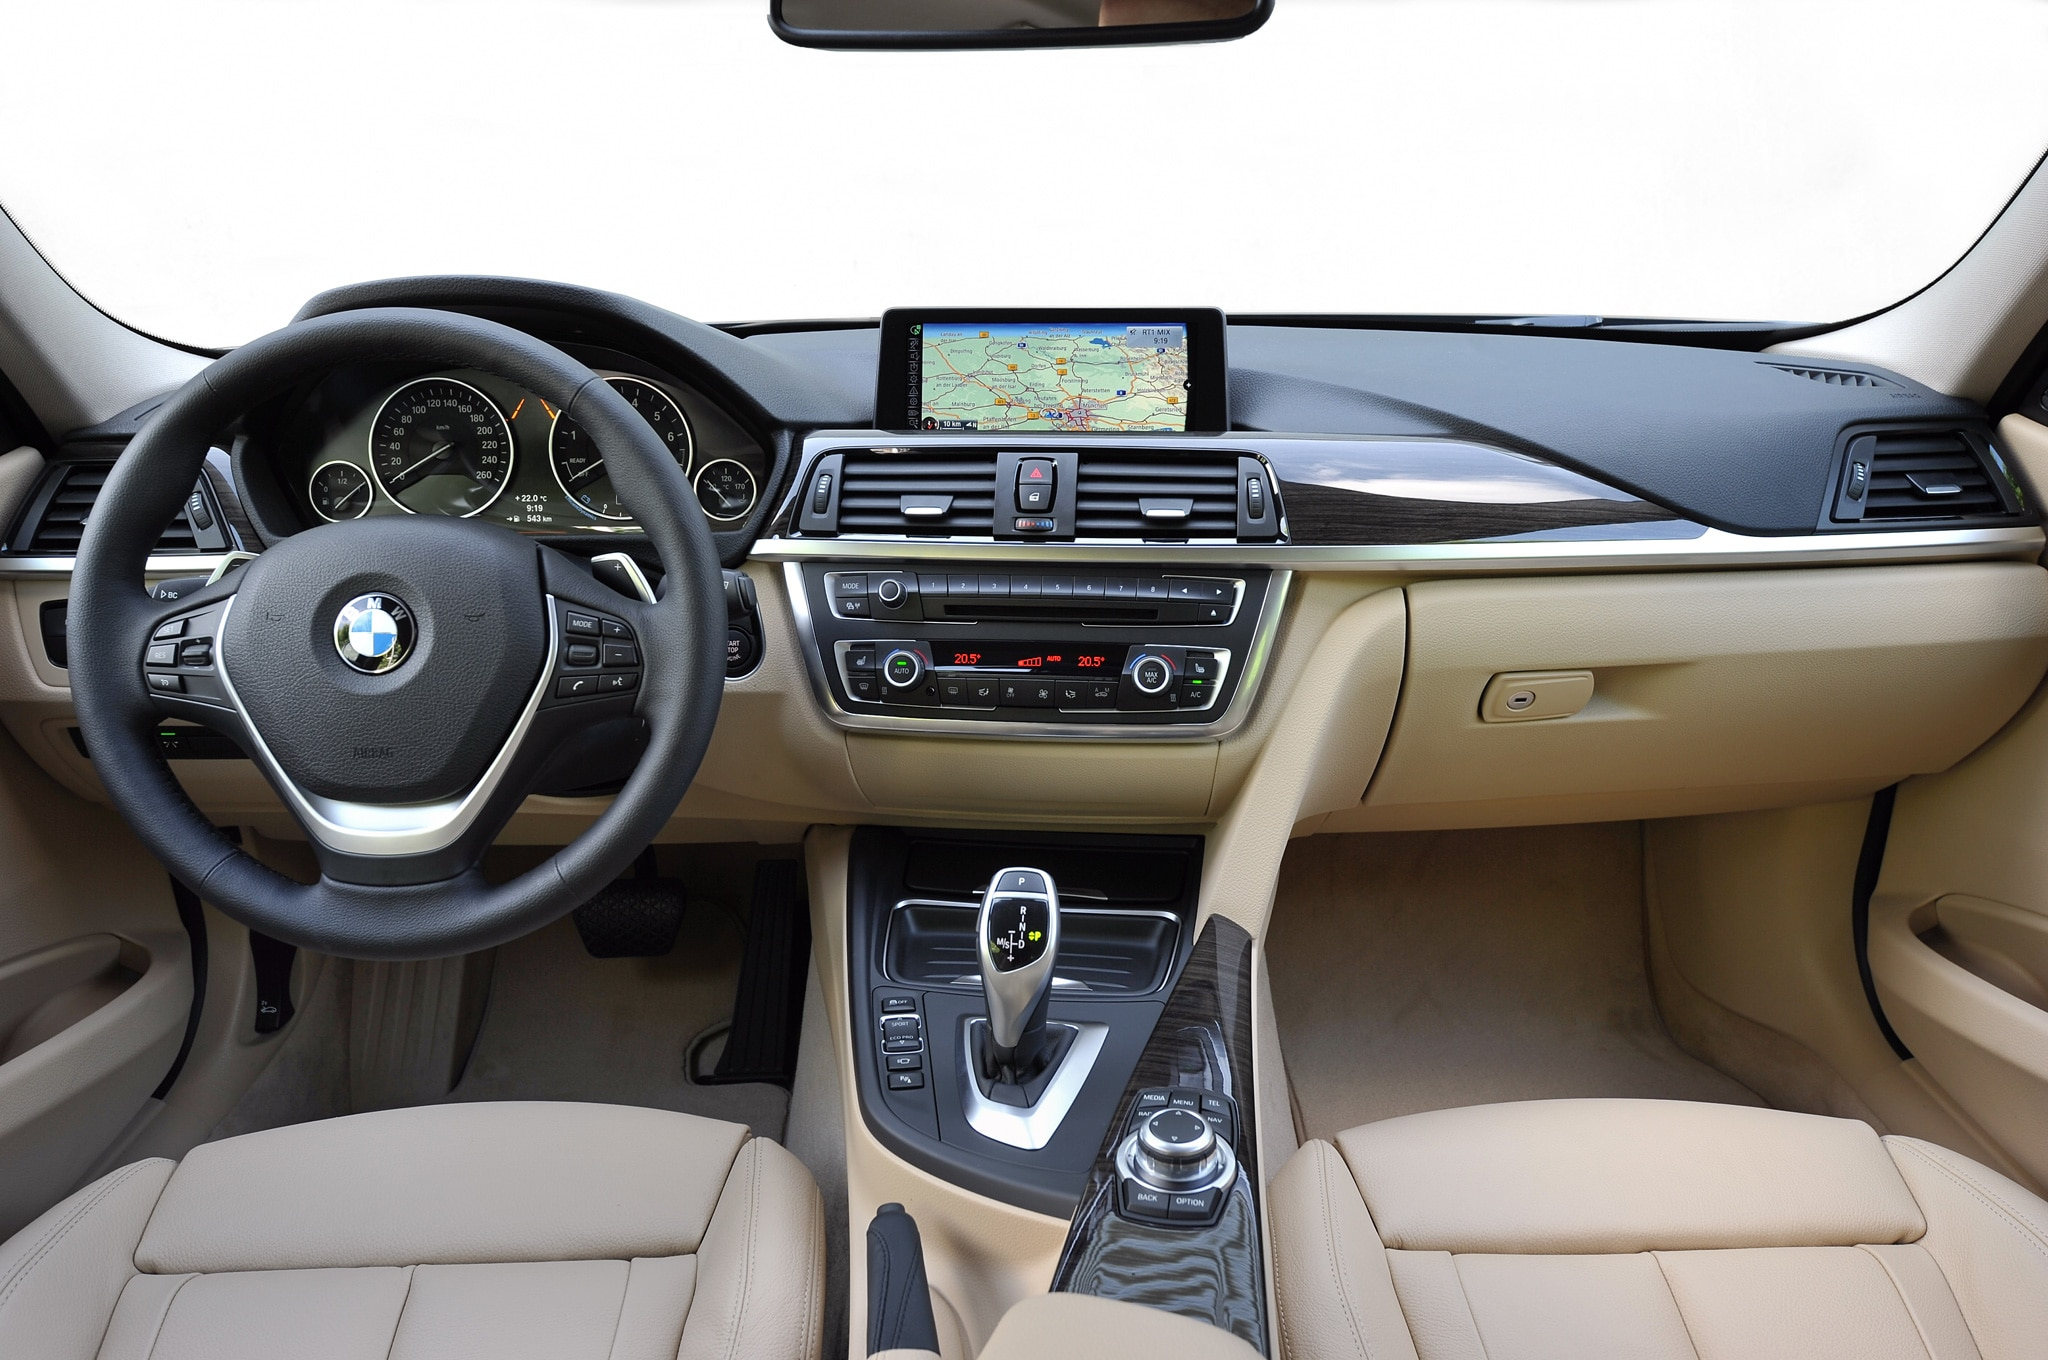 2013 bmw 320i interior male models picture - 2013 Bmw 3 Series Sports Wagon